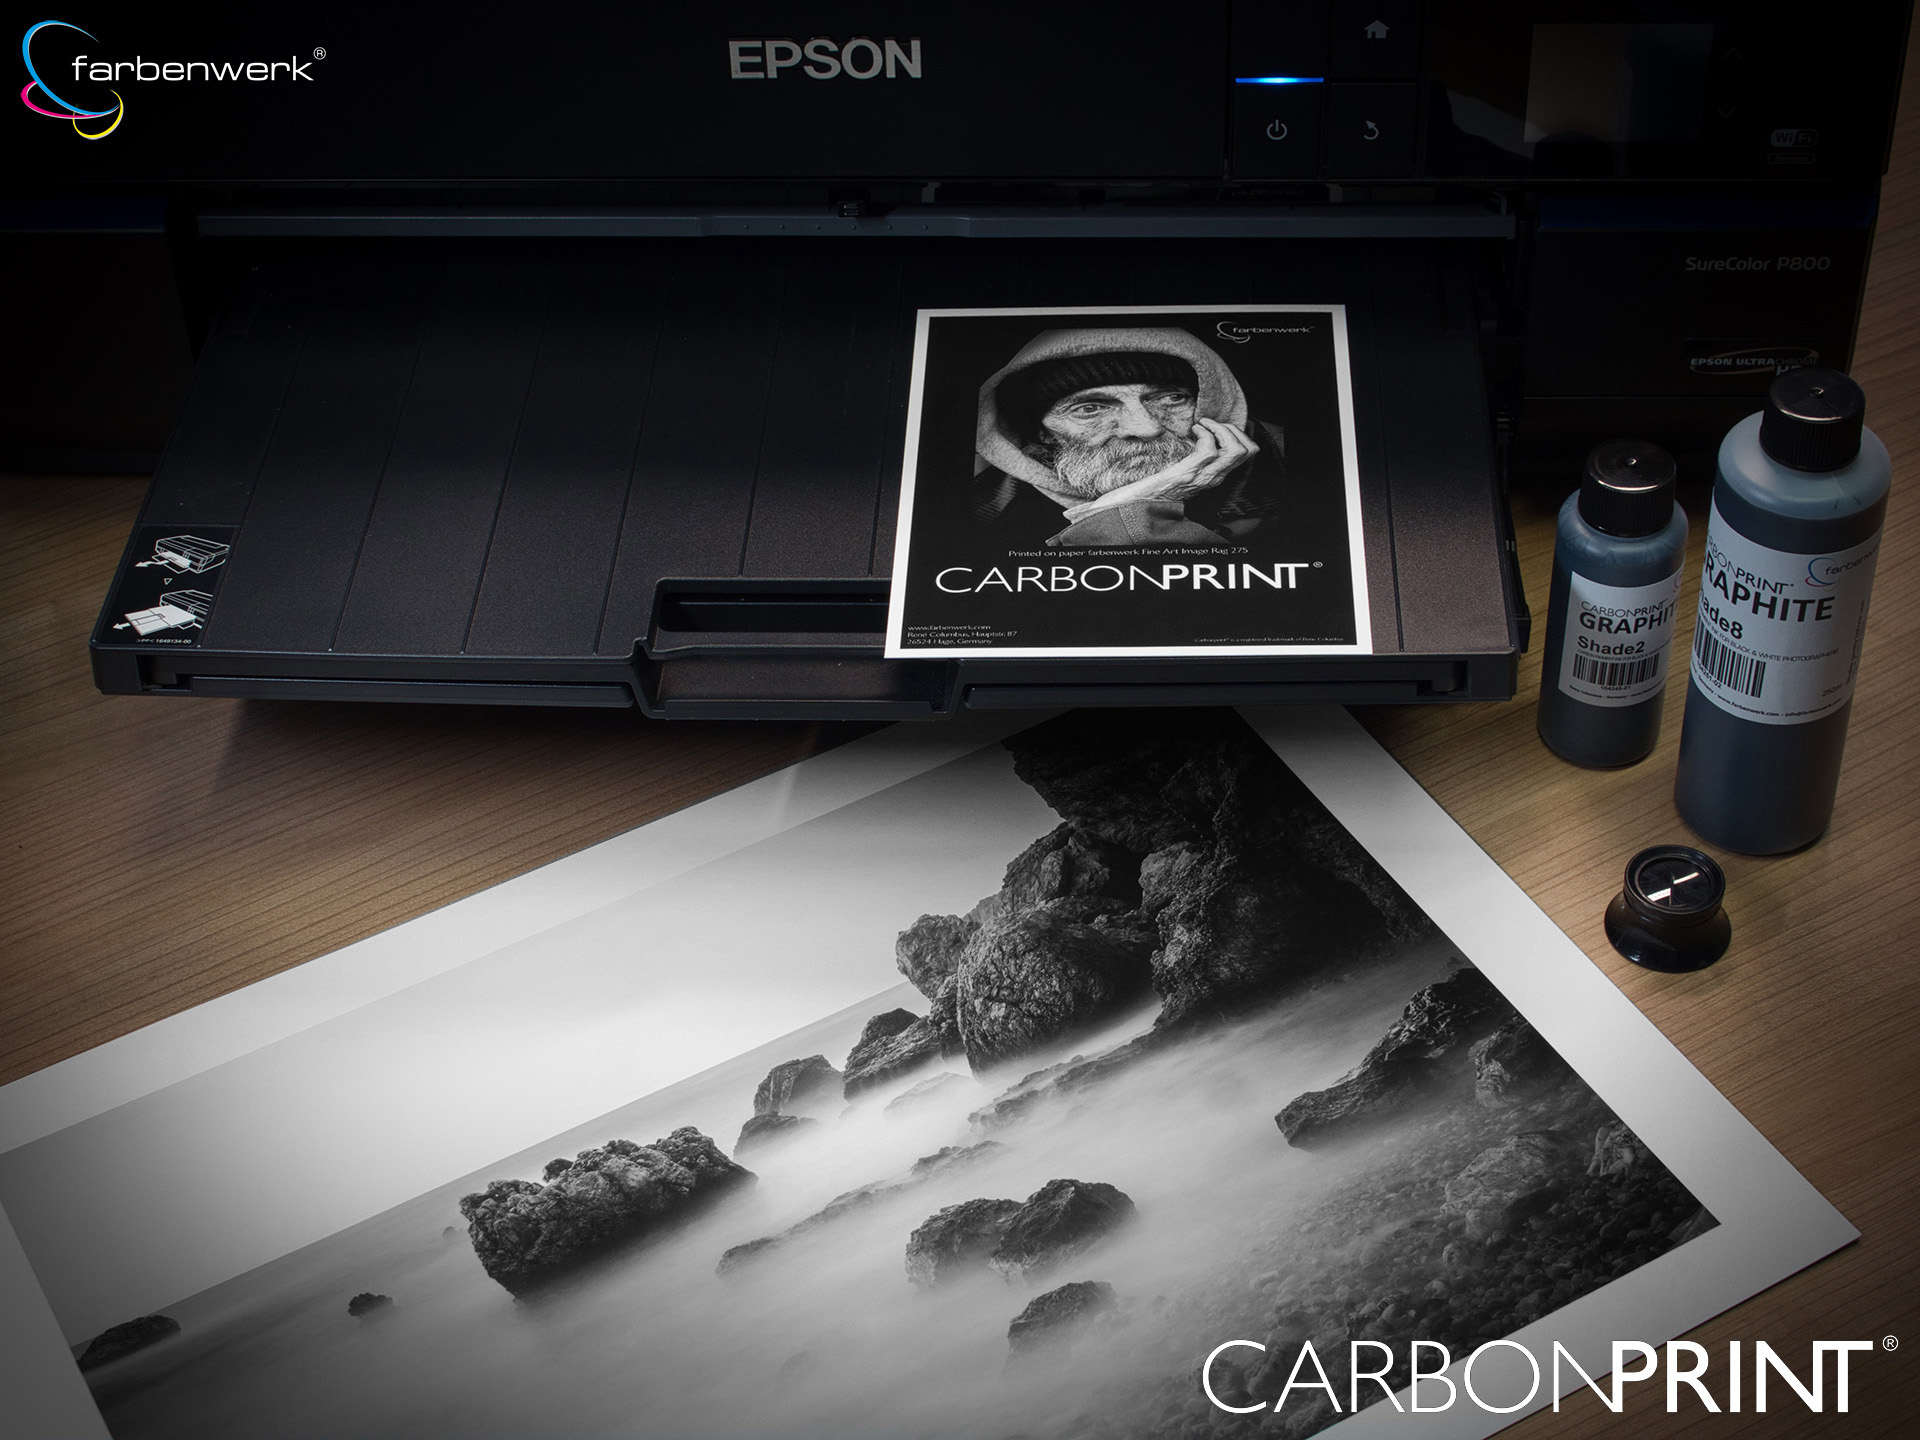 Carbonprint Graphite in einem Epson Surecolor SC-P800